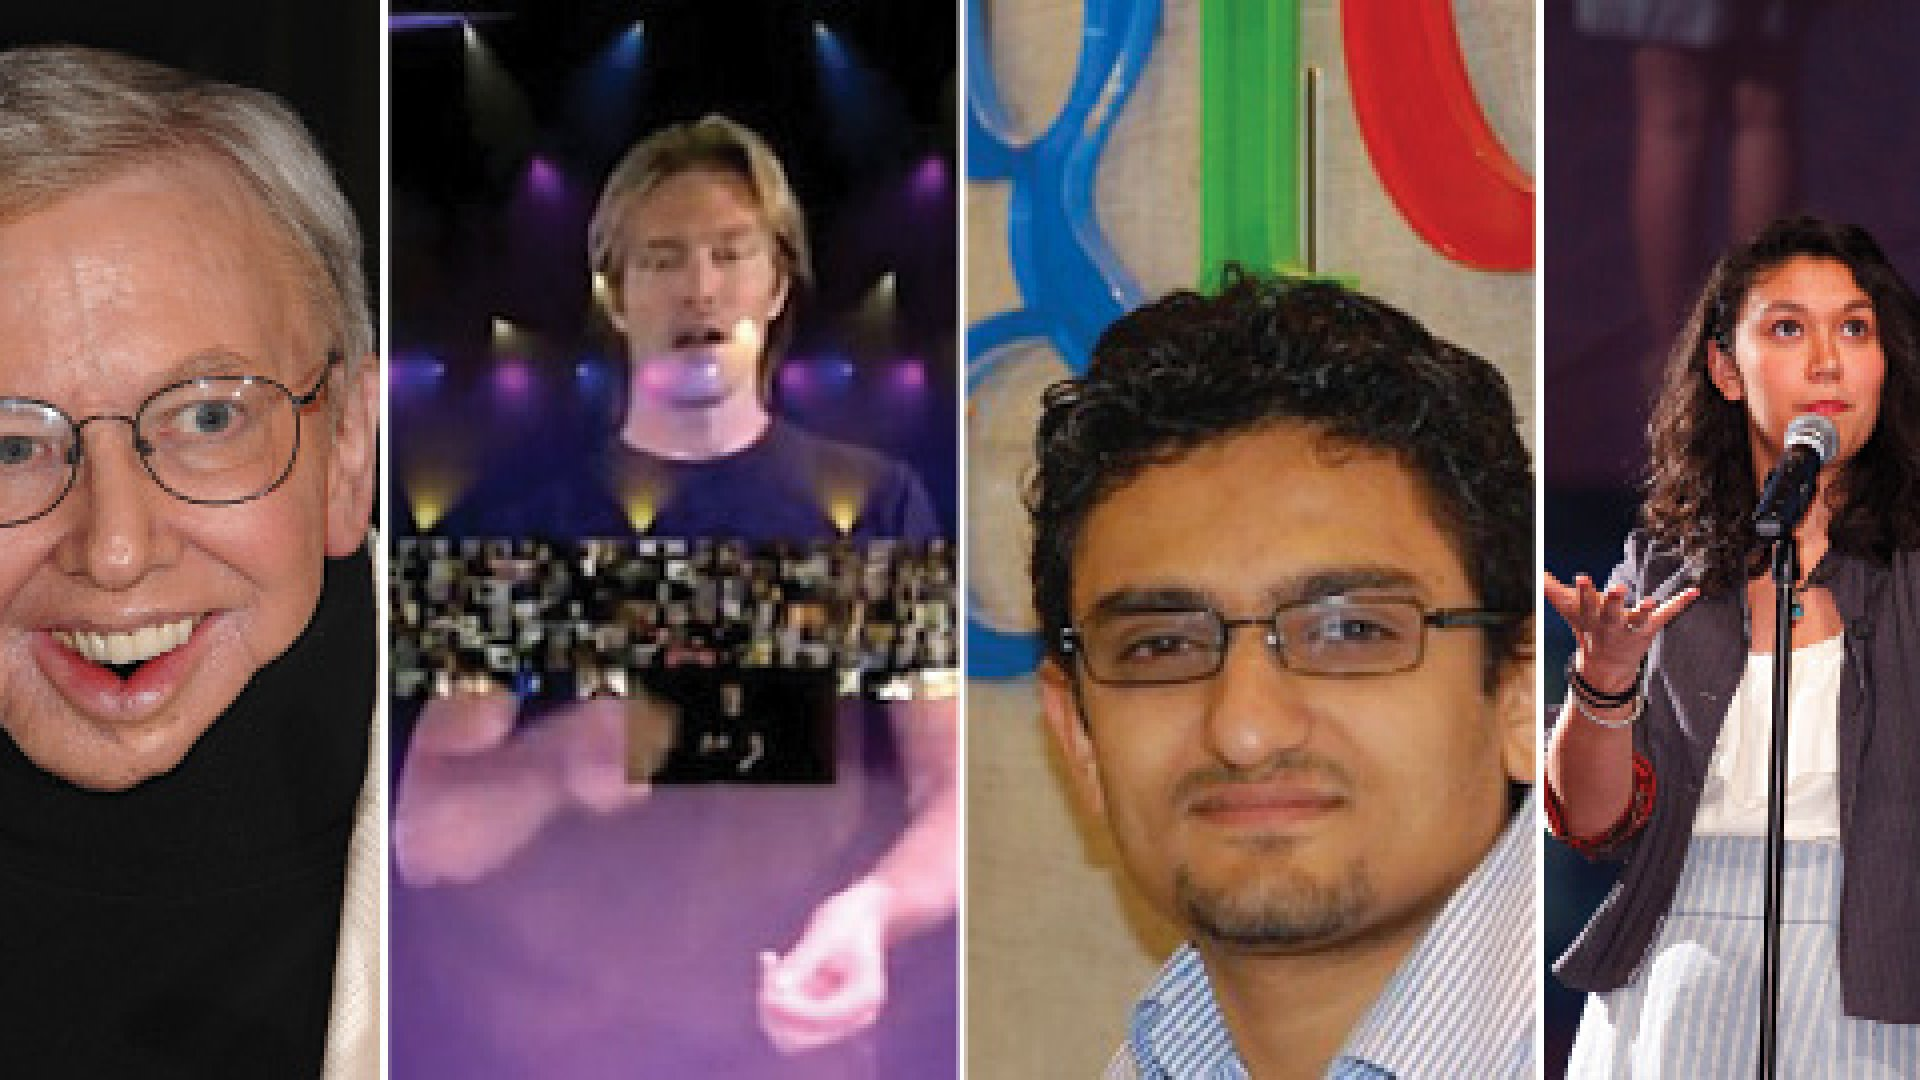 <strong>Smart People:</strong> Roger Ebert (left), conductor Eric Whitacre and his Virtual Choir, Wael Ghonim, the Egyptian-born Googler, and slam poet Sarah Kay all spoke at TED.